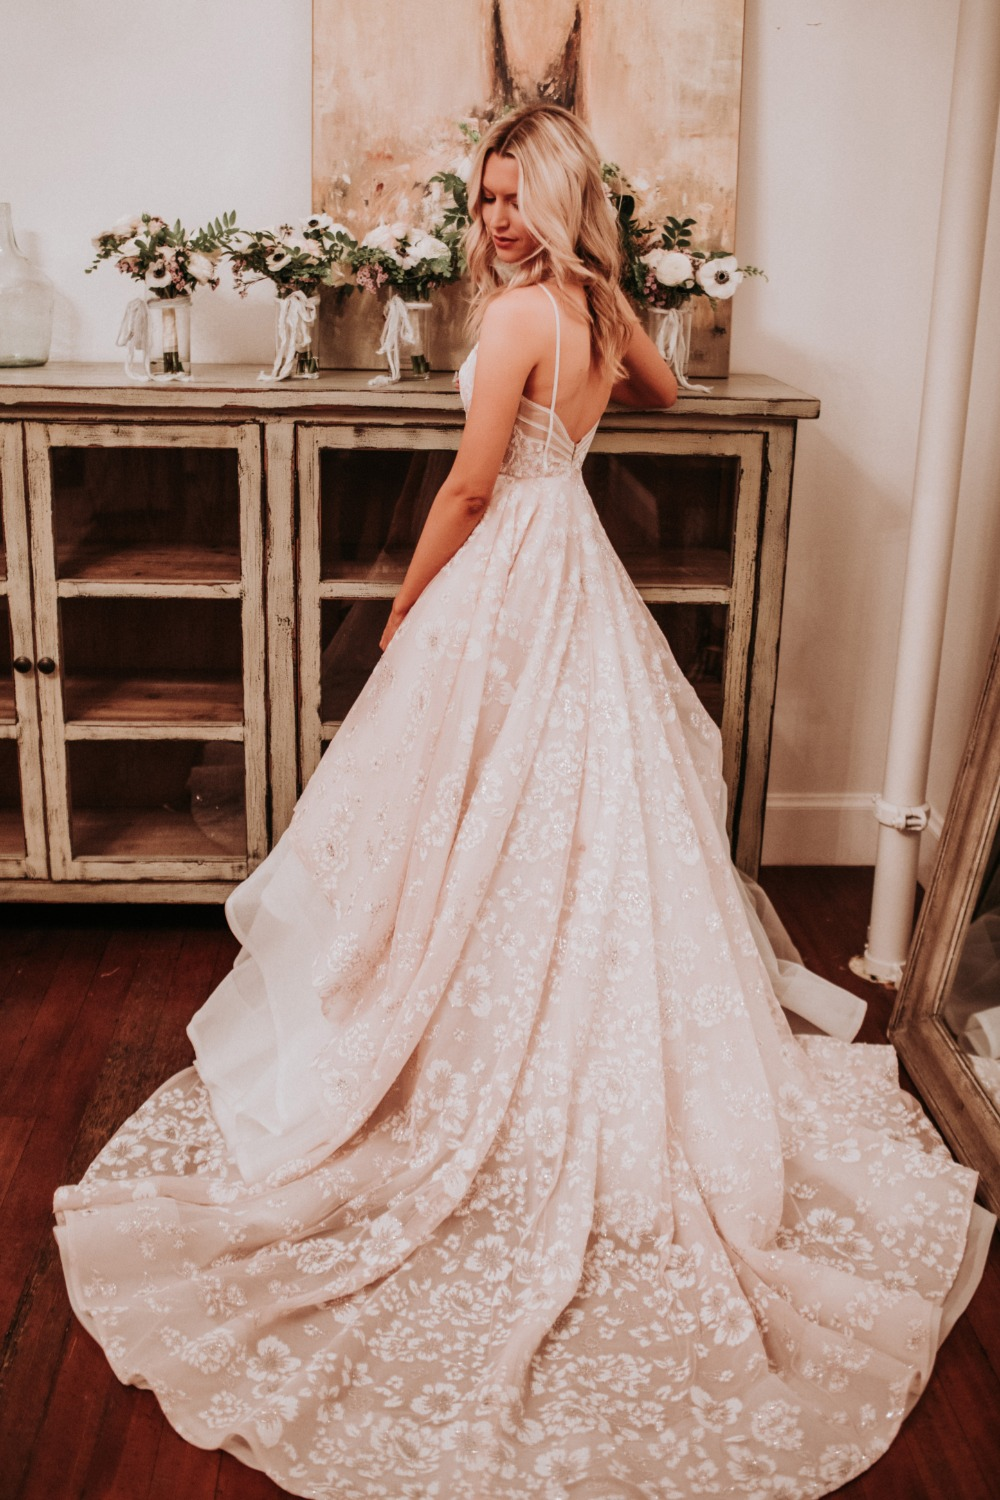 floral print wedding dress by Hayley Paige